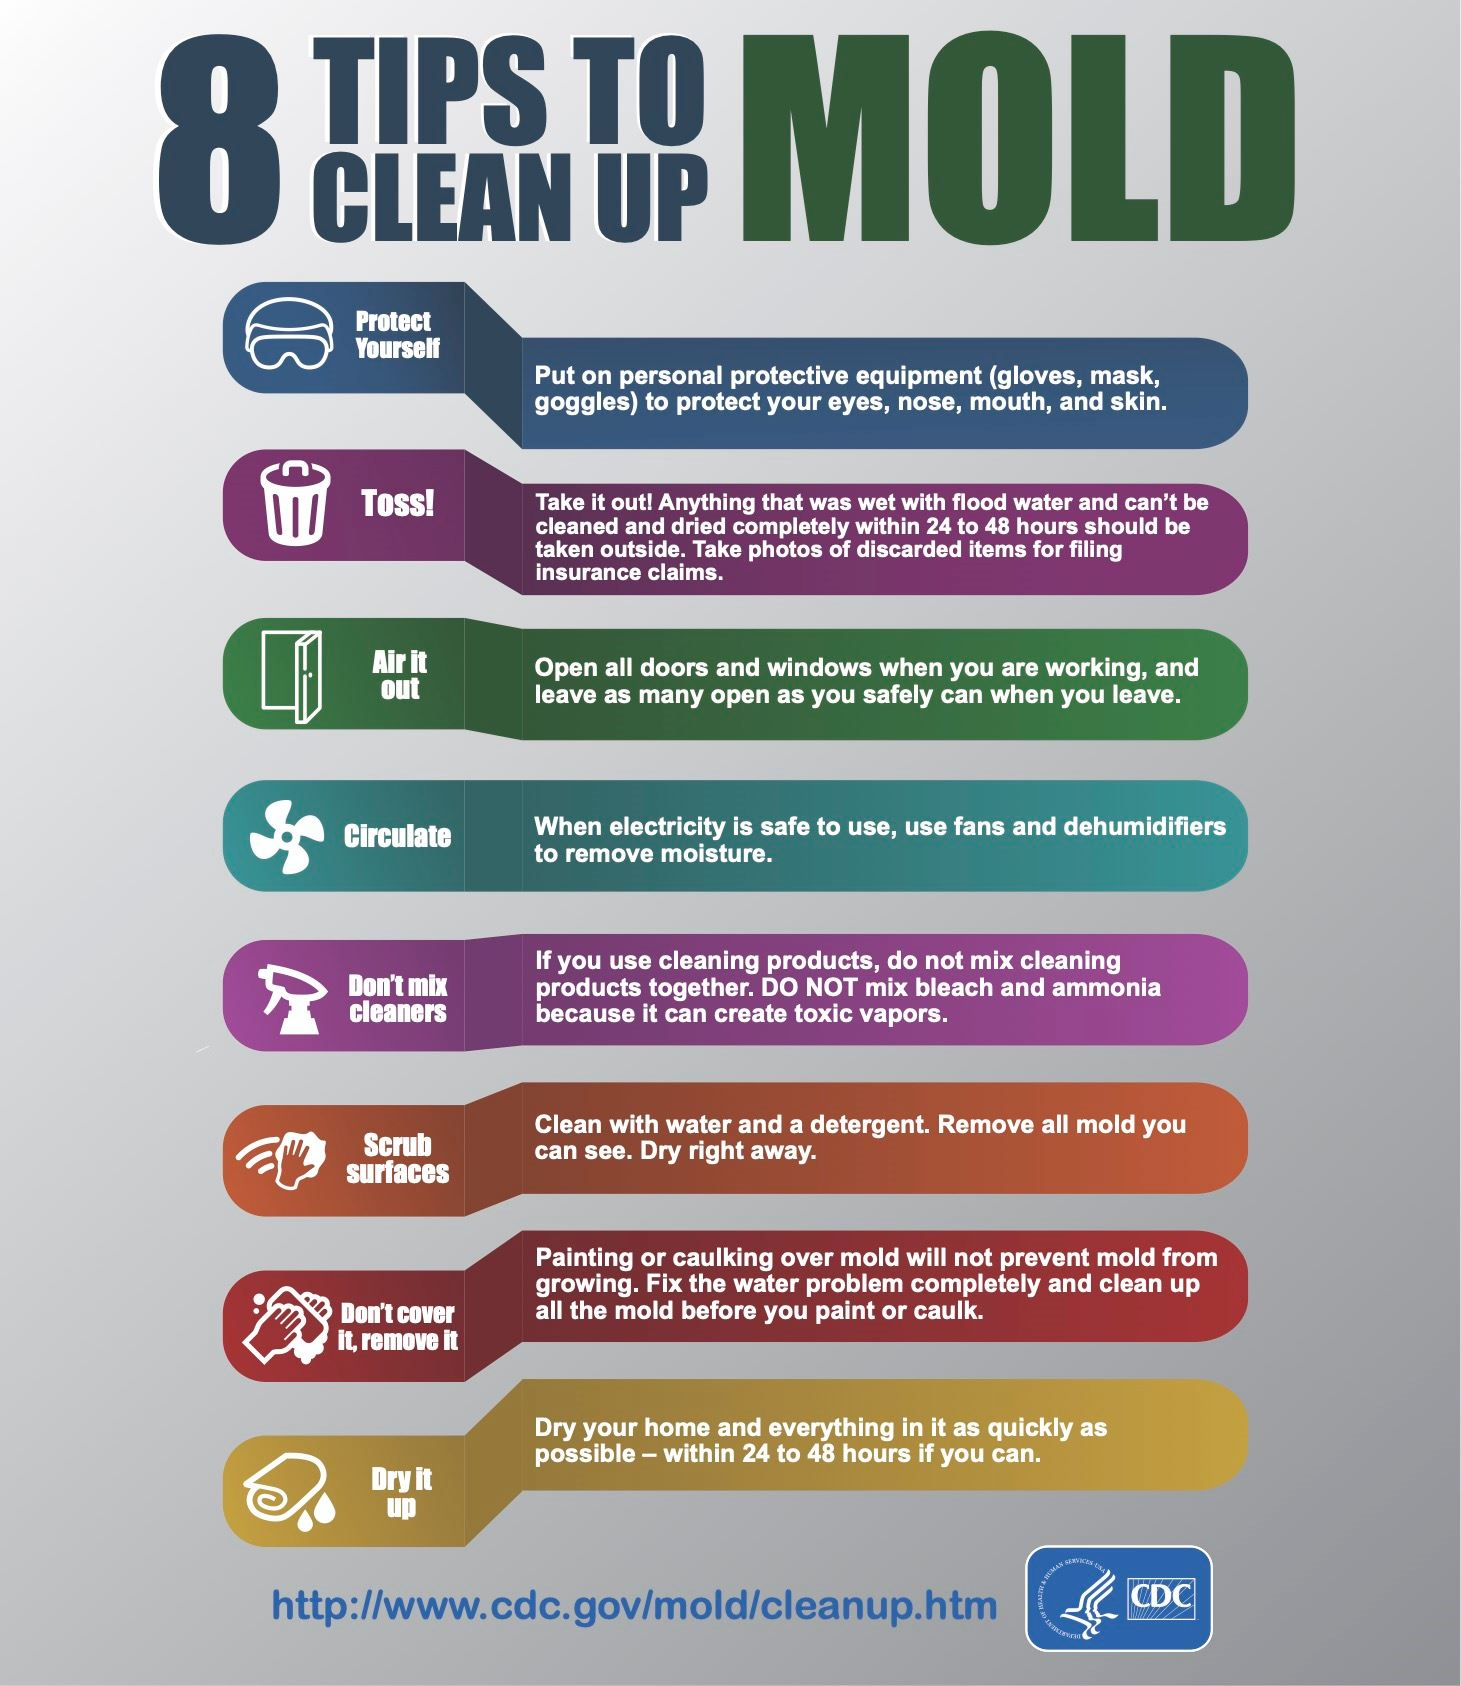 mold clean up tips